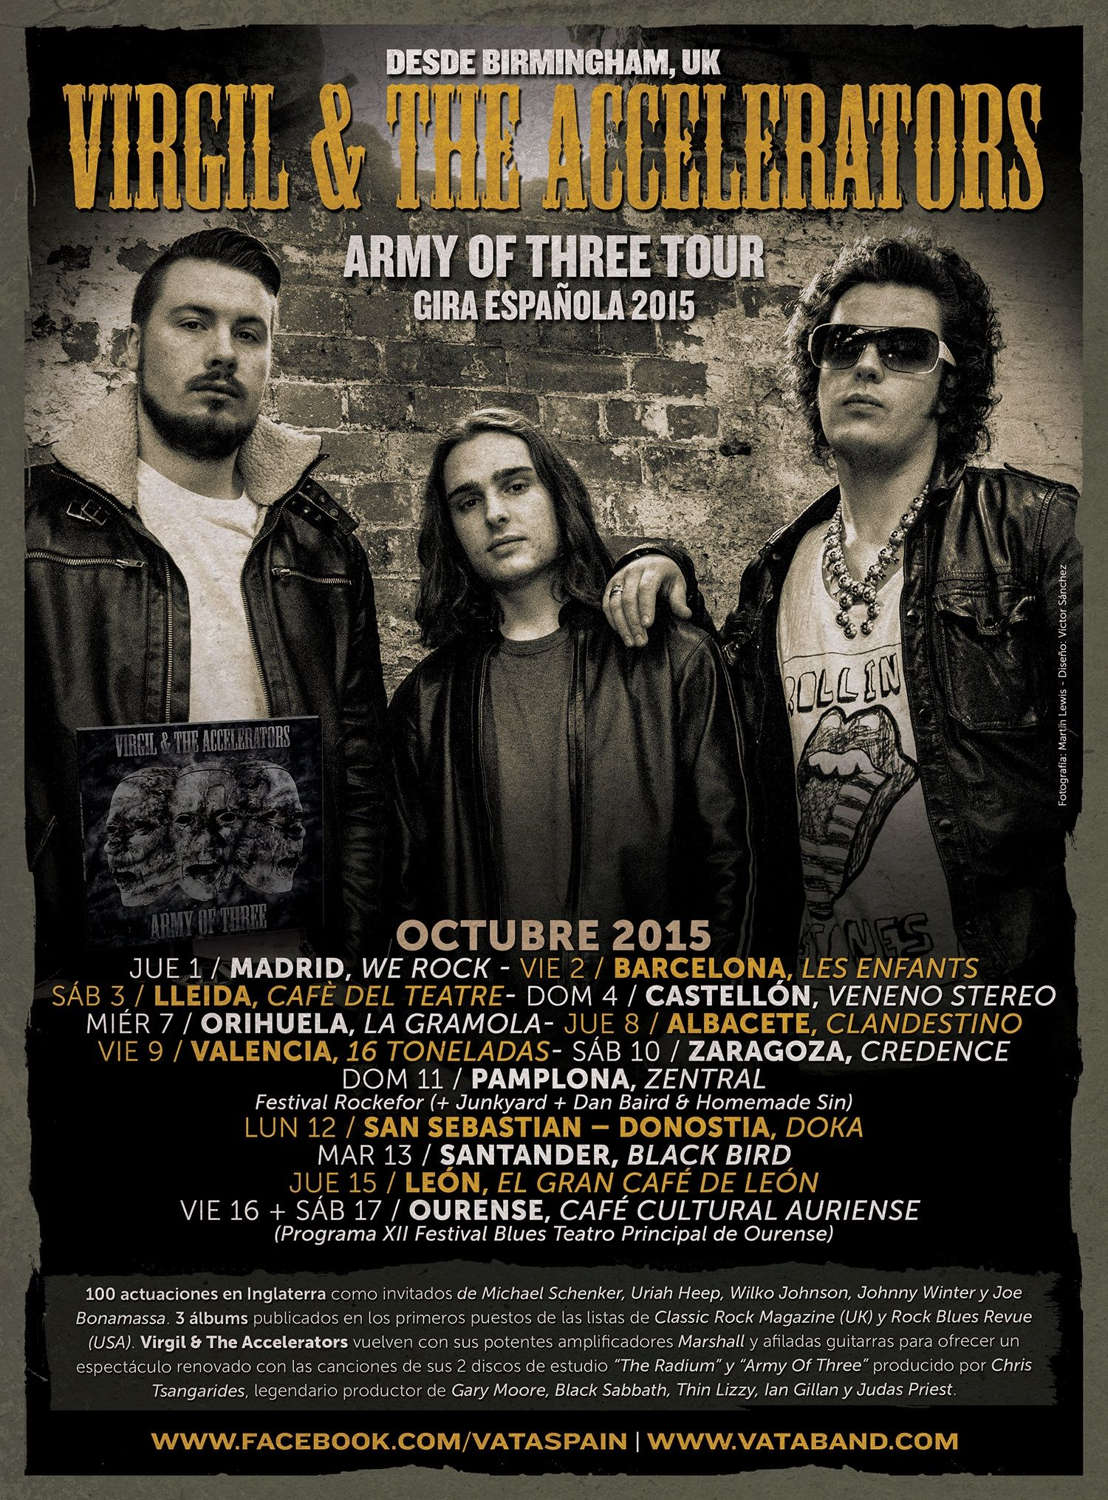 VIRGIL AND THE ACCELERATORS tour 2015